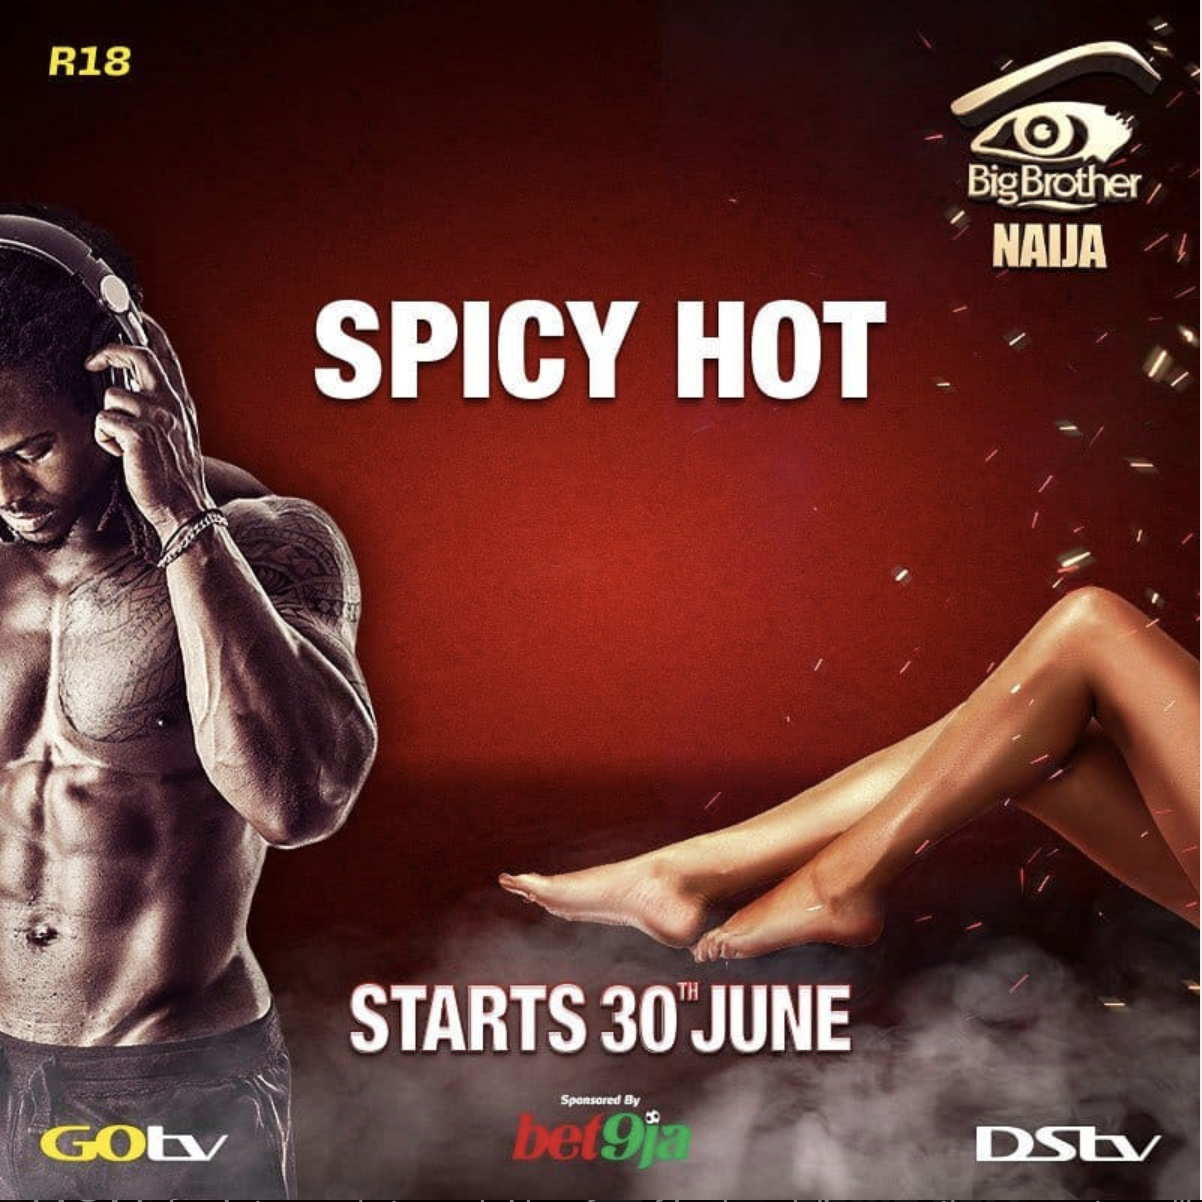 Big Brother Naija Season 4 Premieres June 30th